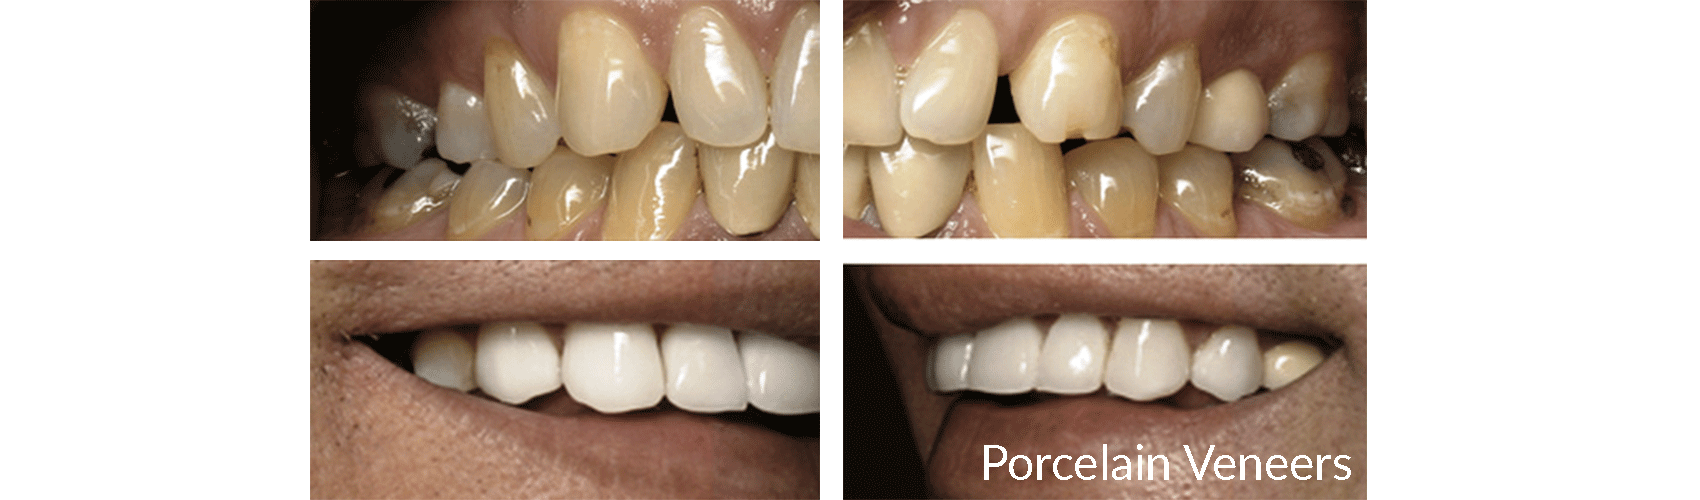 Before and after case of a mouth using Porcelain Veneers